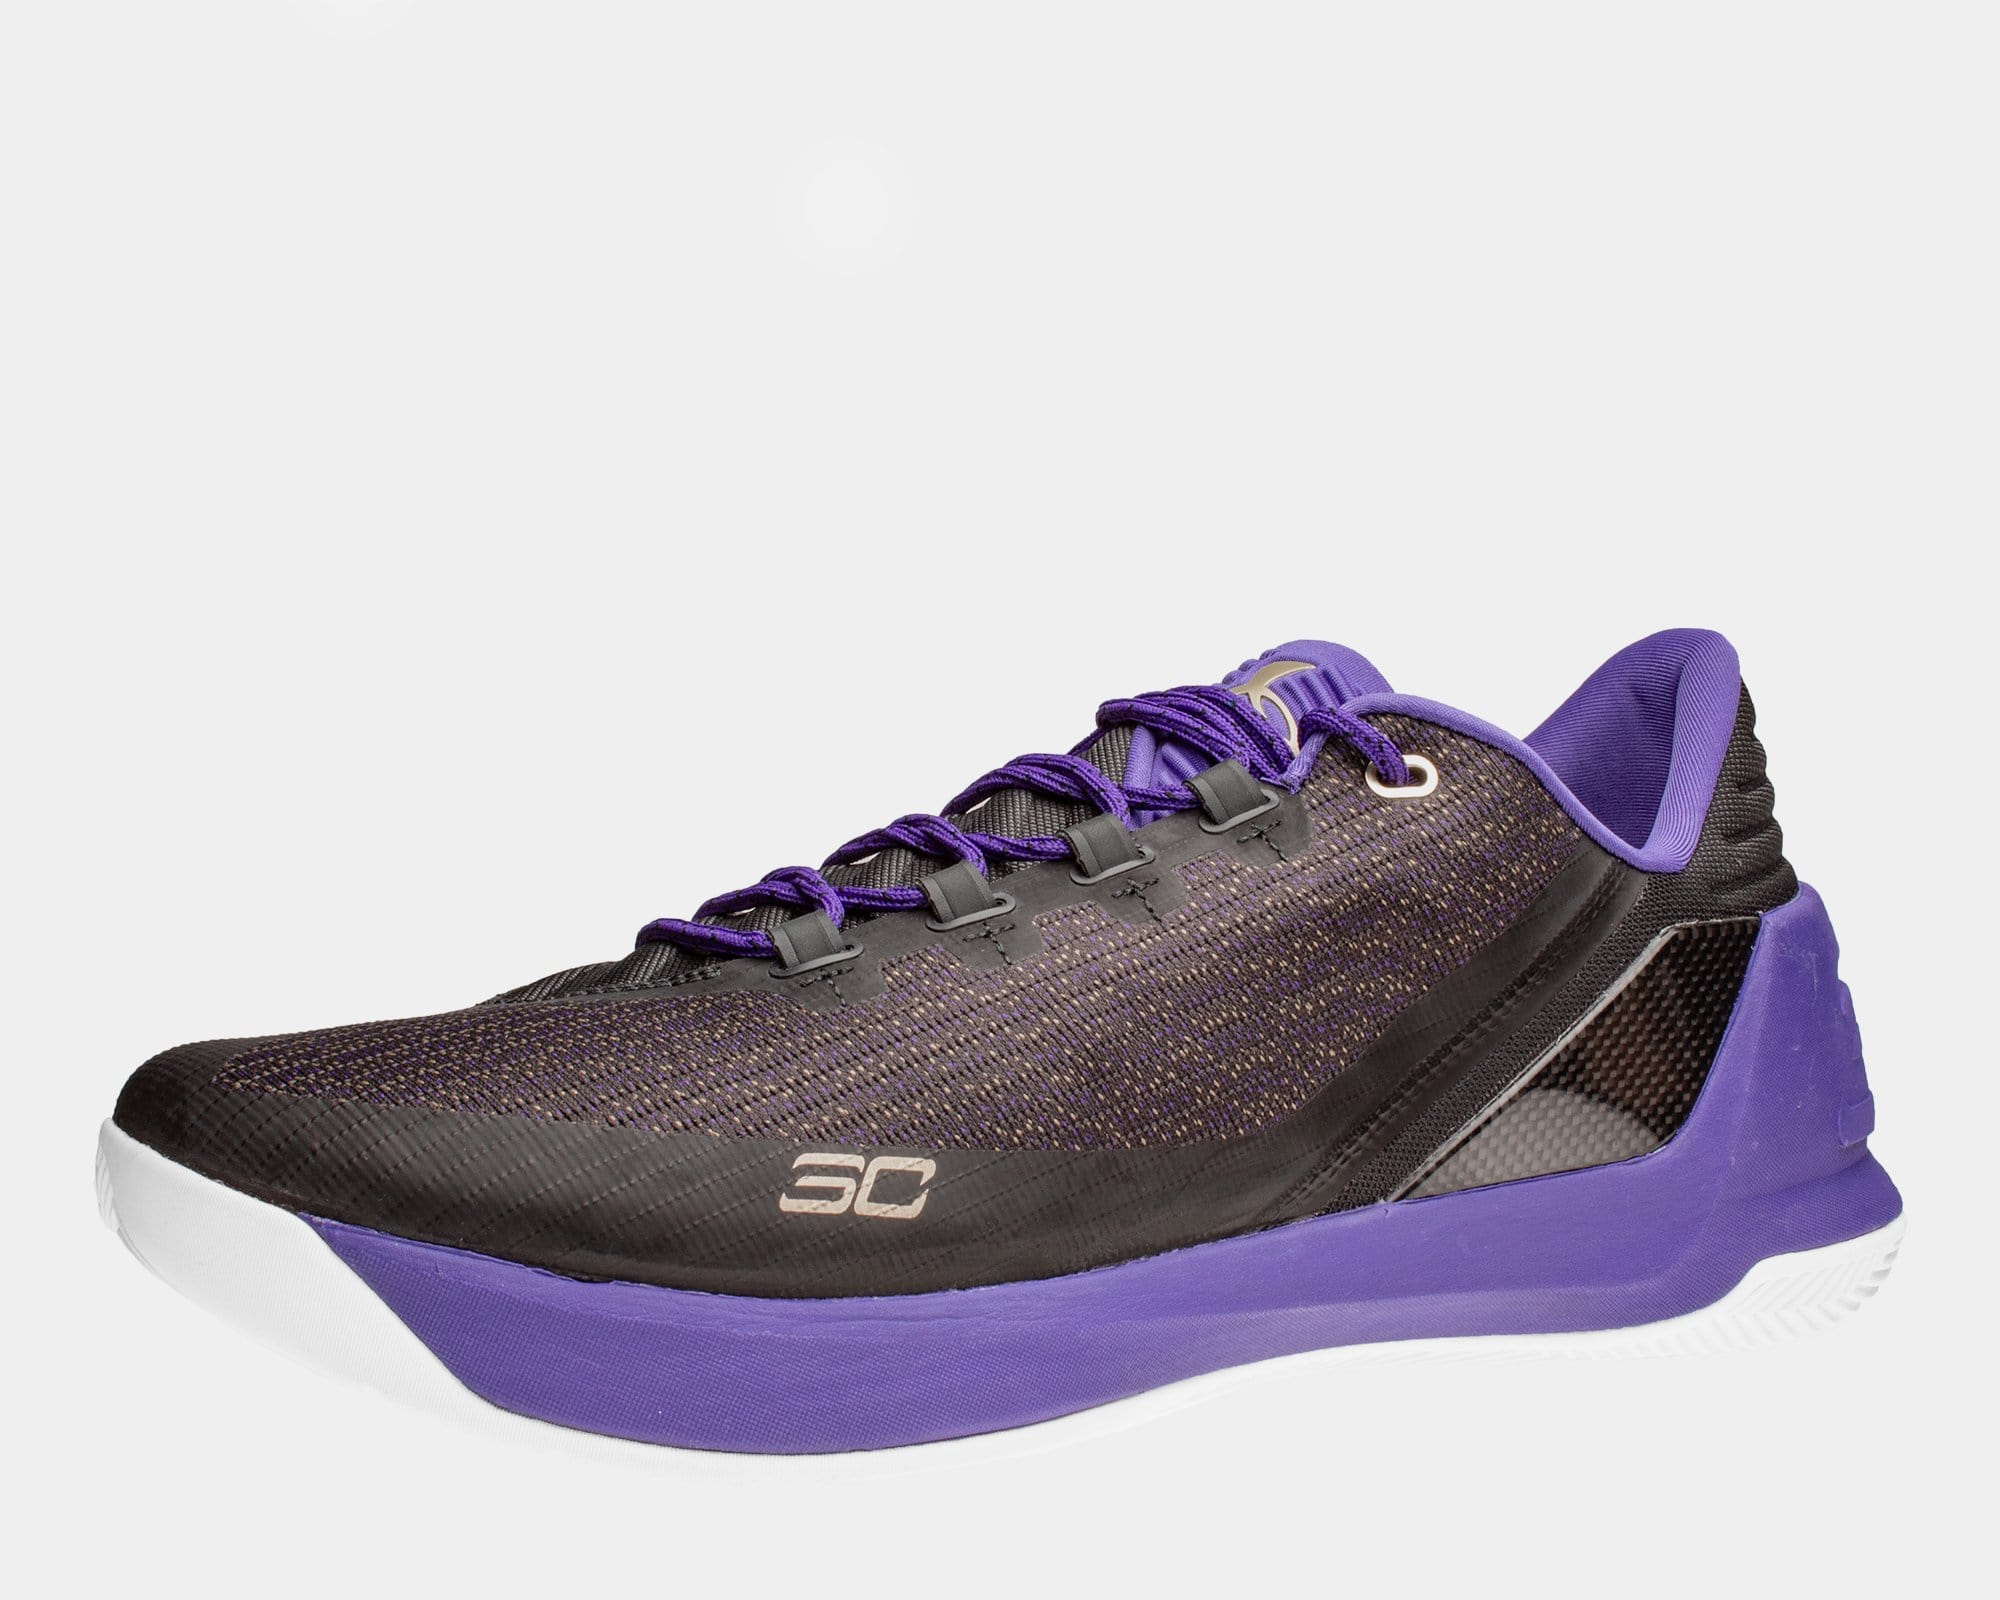 a90e45cba8c7 ... where to buy under armour curry 3 low basketball shoes mens large sizes  b139c 4eb07